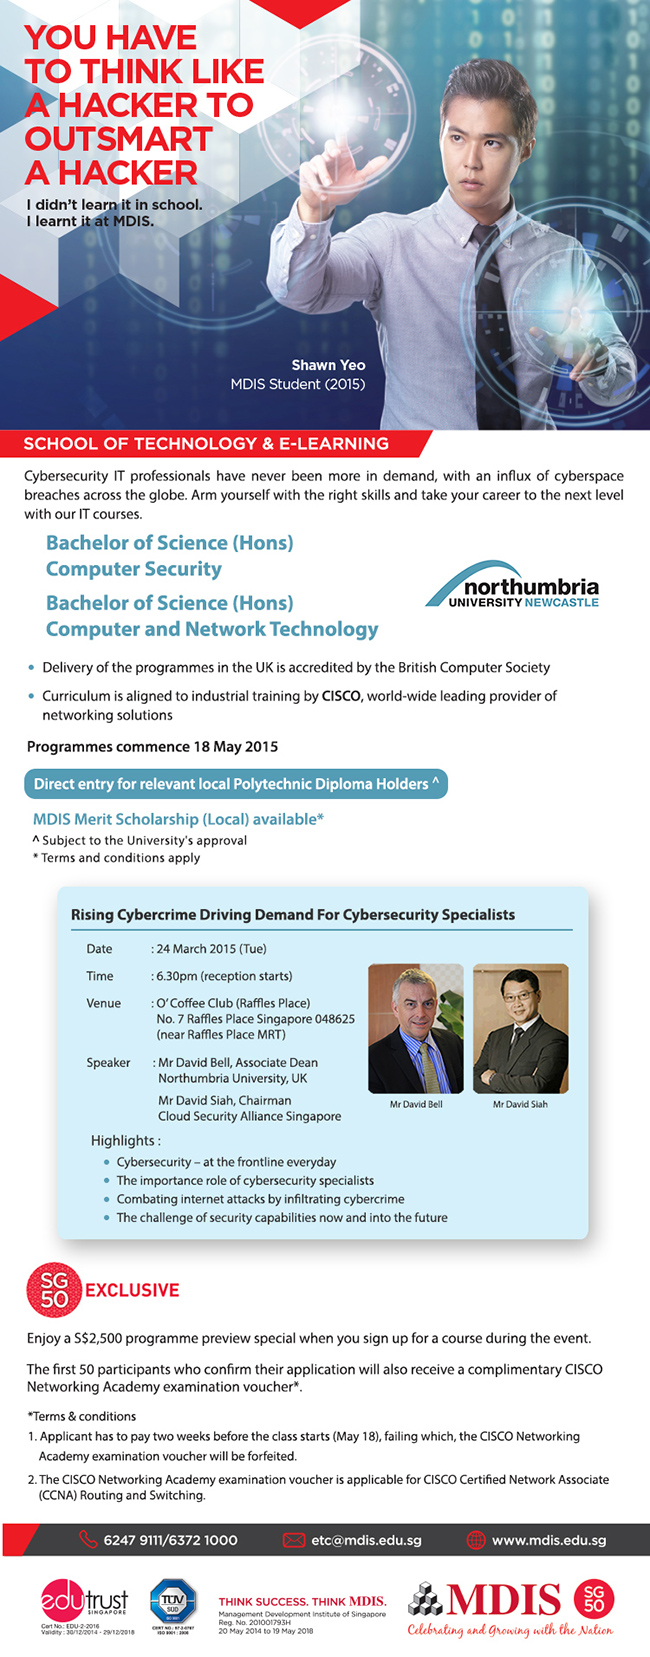 Preview Session on 24 Mar 2015 (Tue): Rising Cybercrime Driving Demand For Cybersecurity Specialists